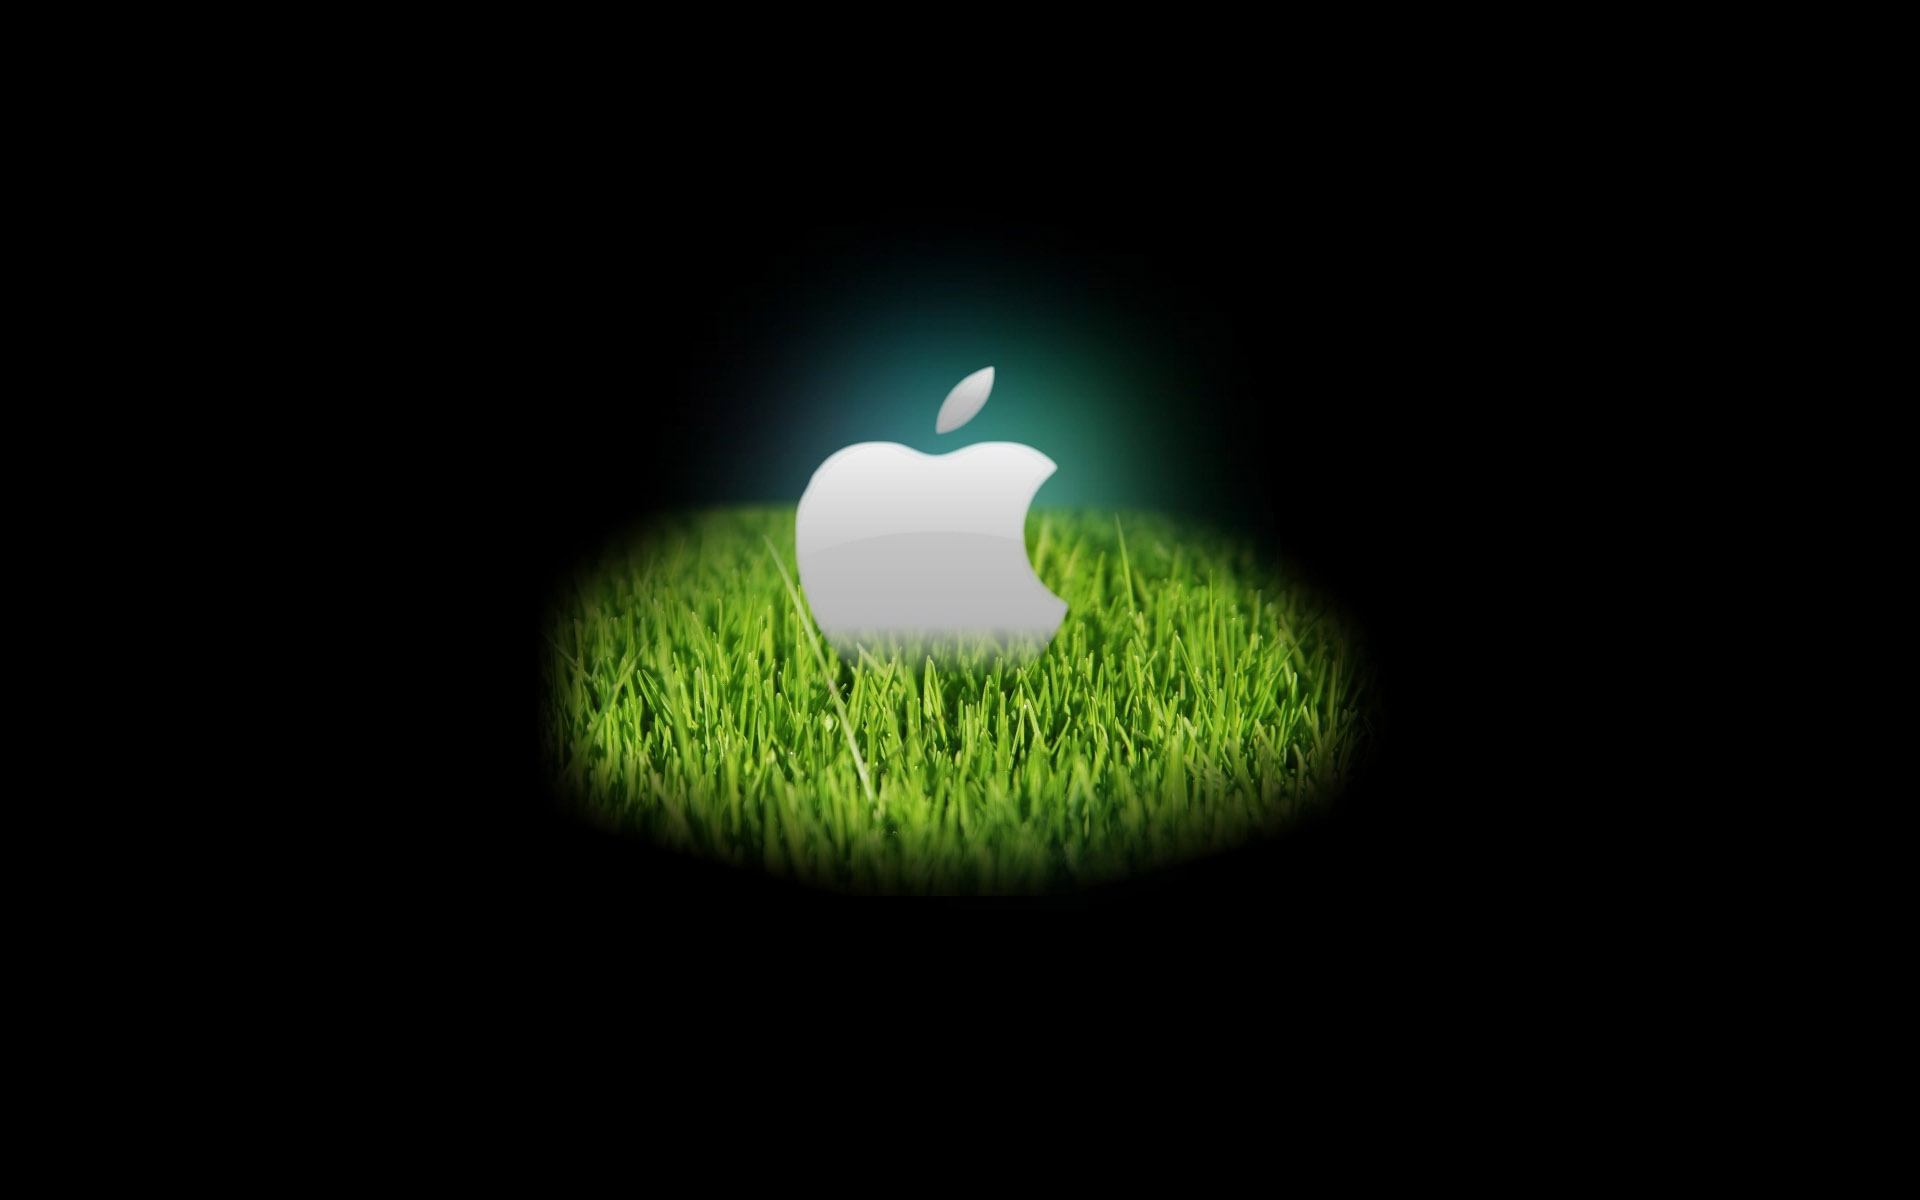 hd apple wallpaper 19349 - desktop wallpapers - system wallpaper